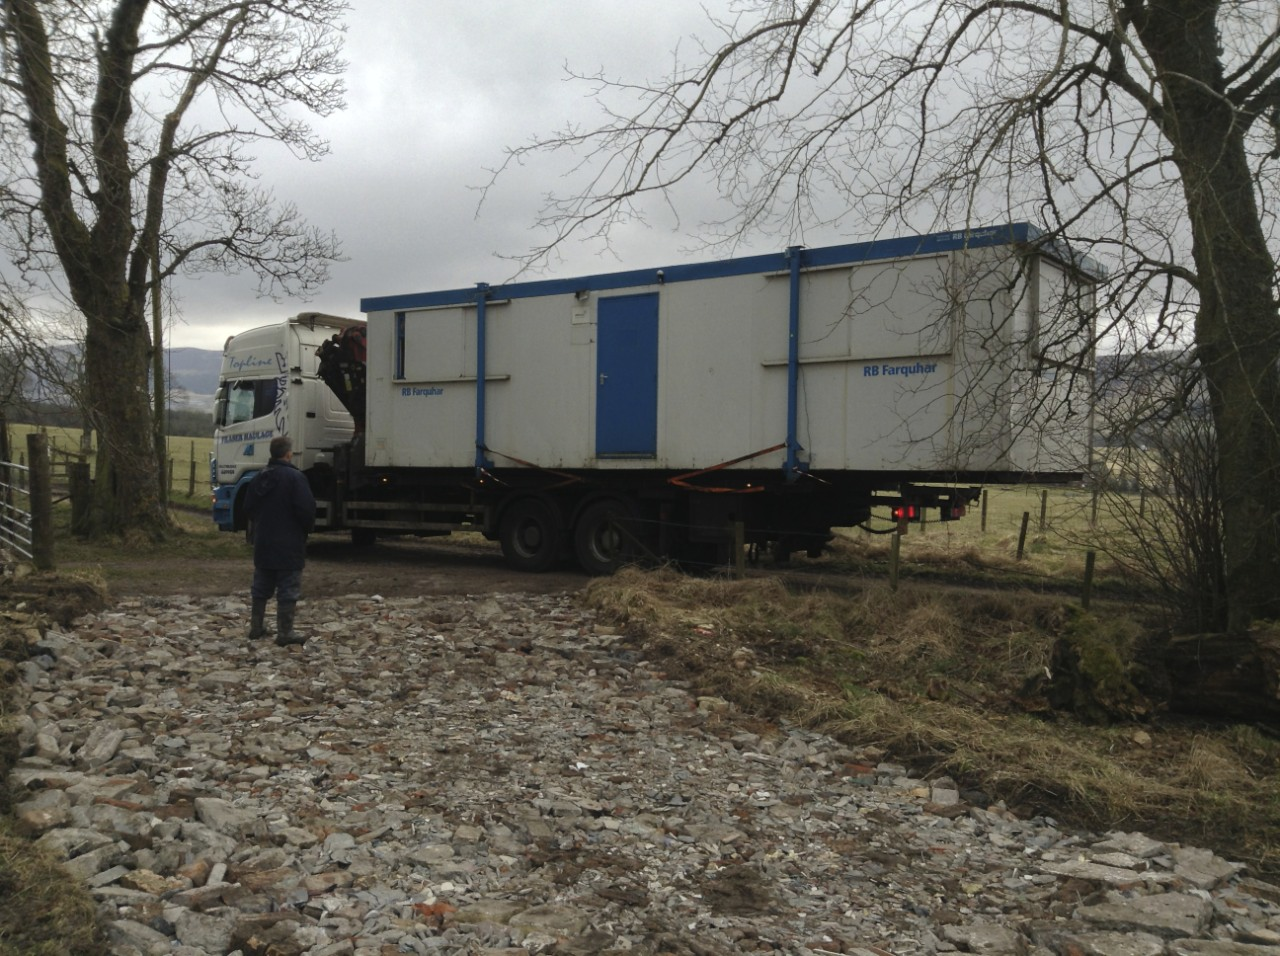 Cabin on lorry. Access track. Not compatible.